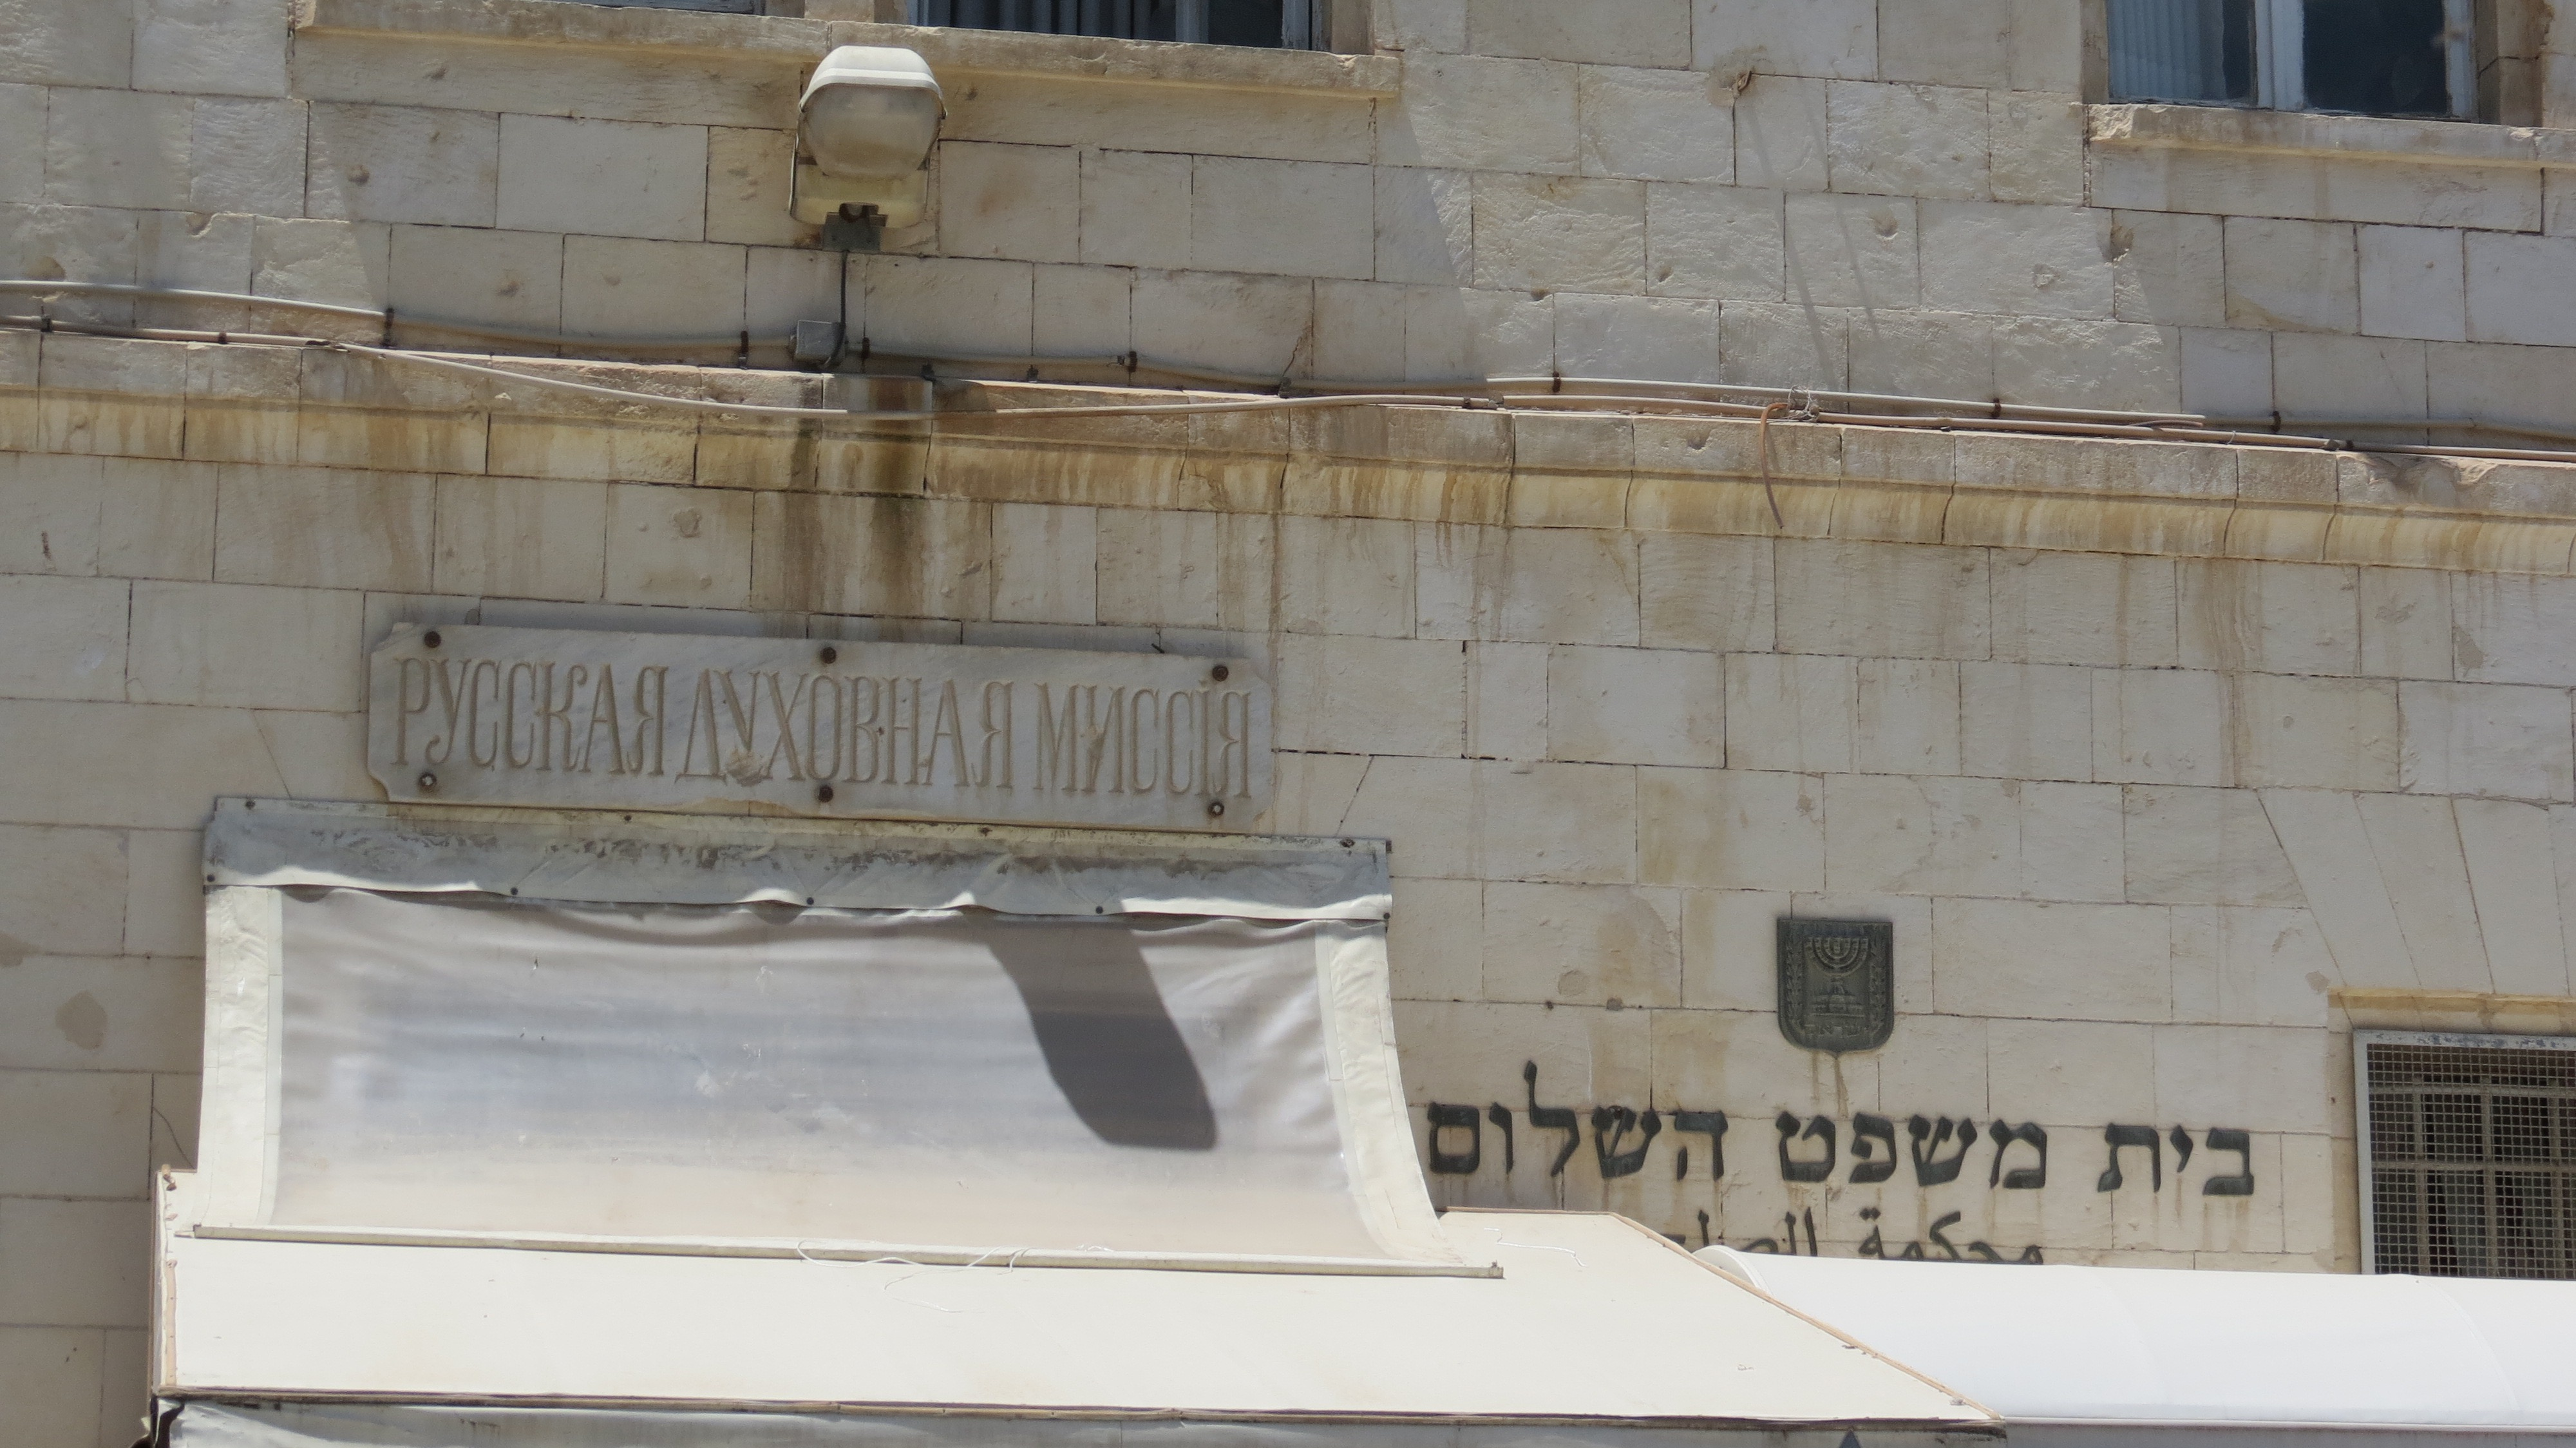 The Russian Compound - Israeli Courthouse